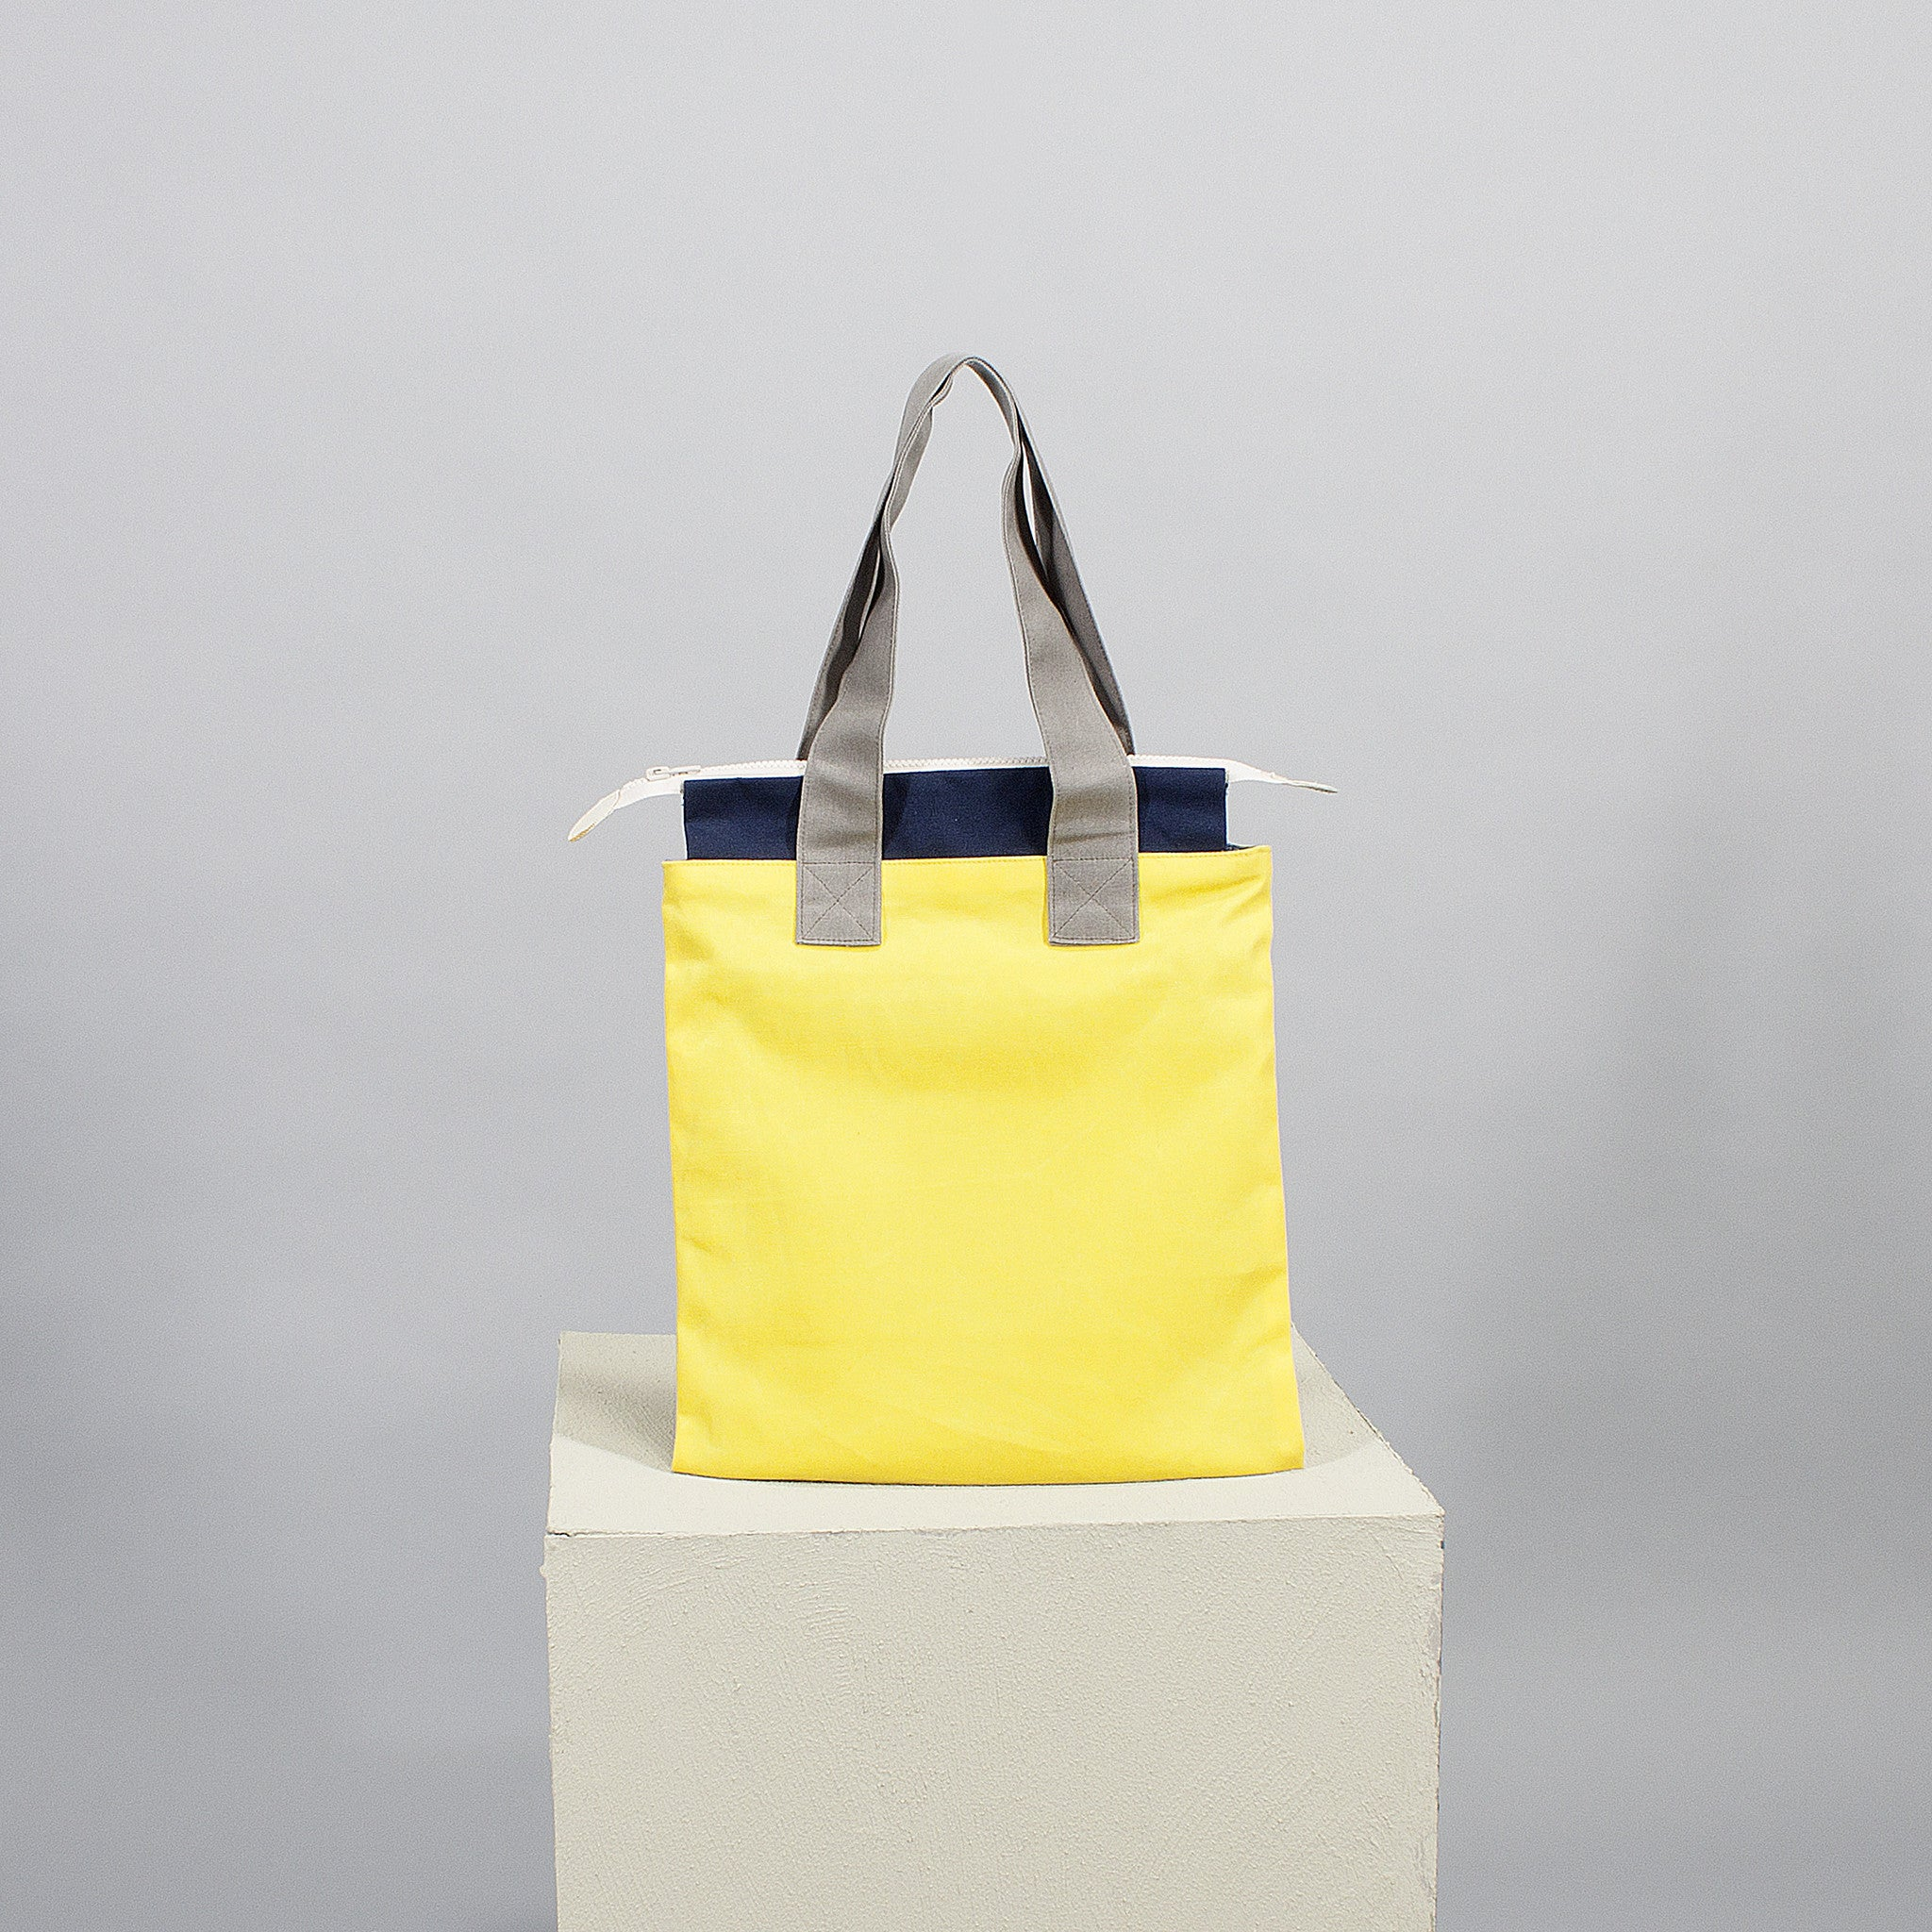 'Cut out' flat tote - yellow